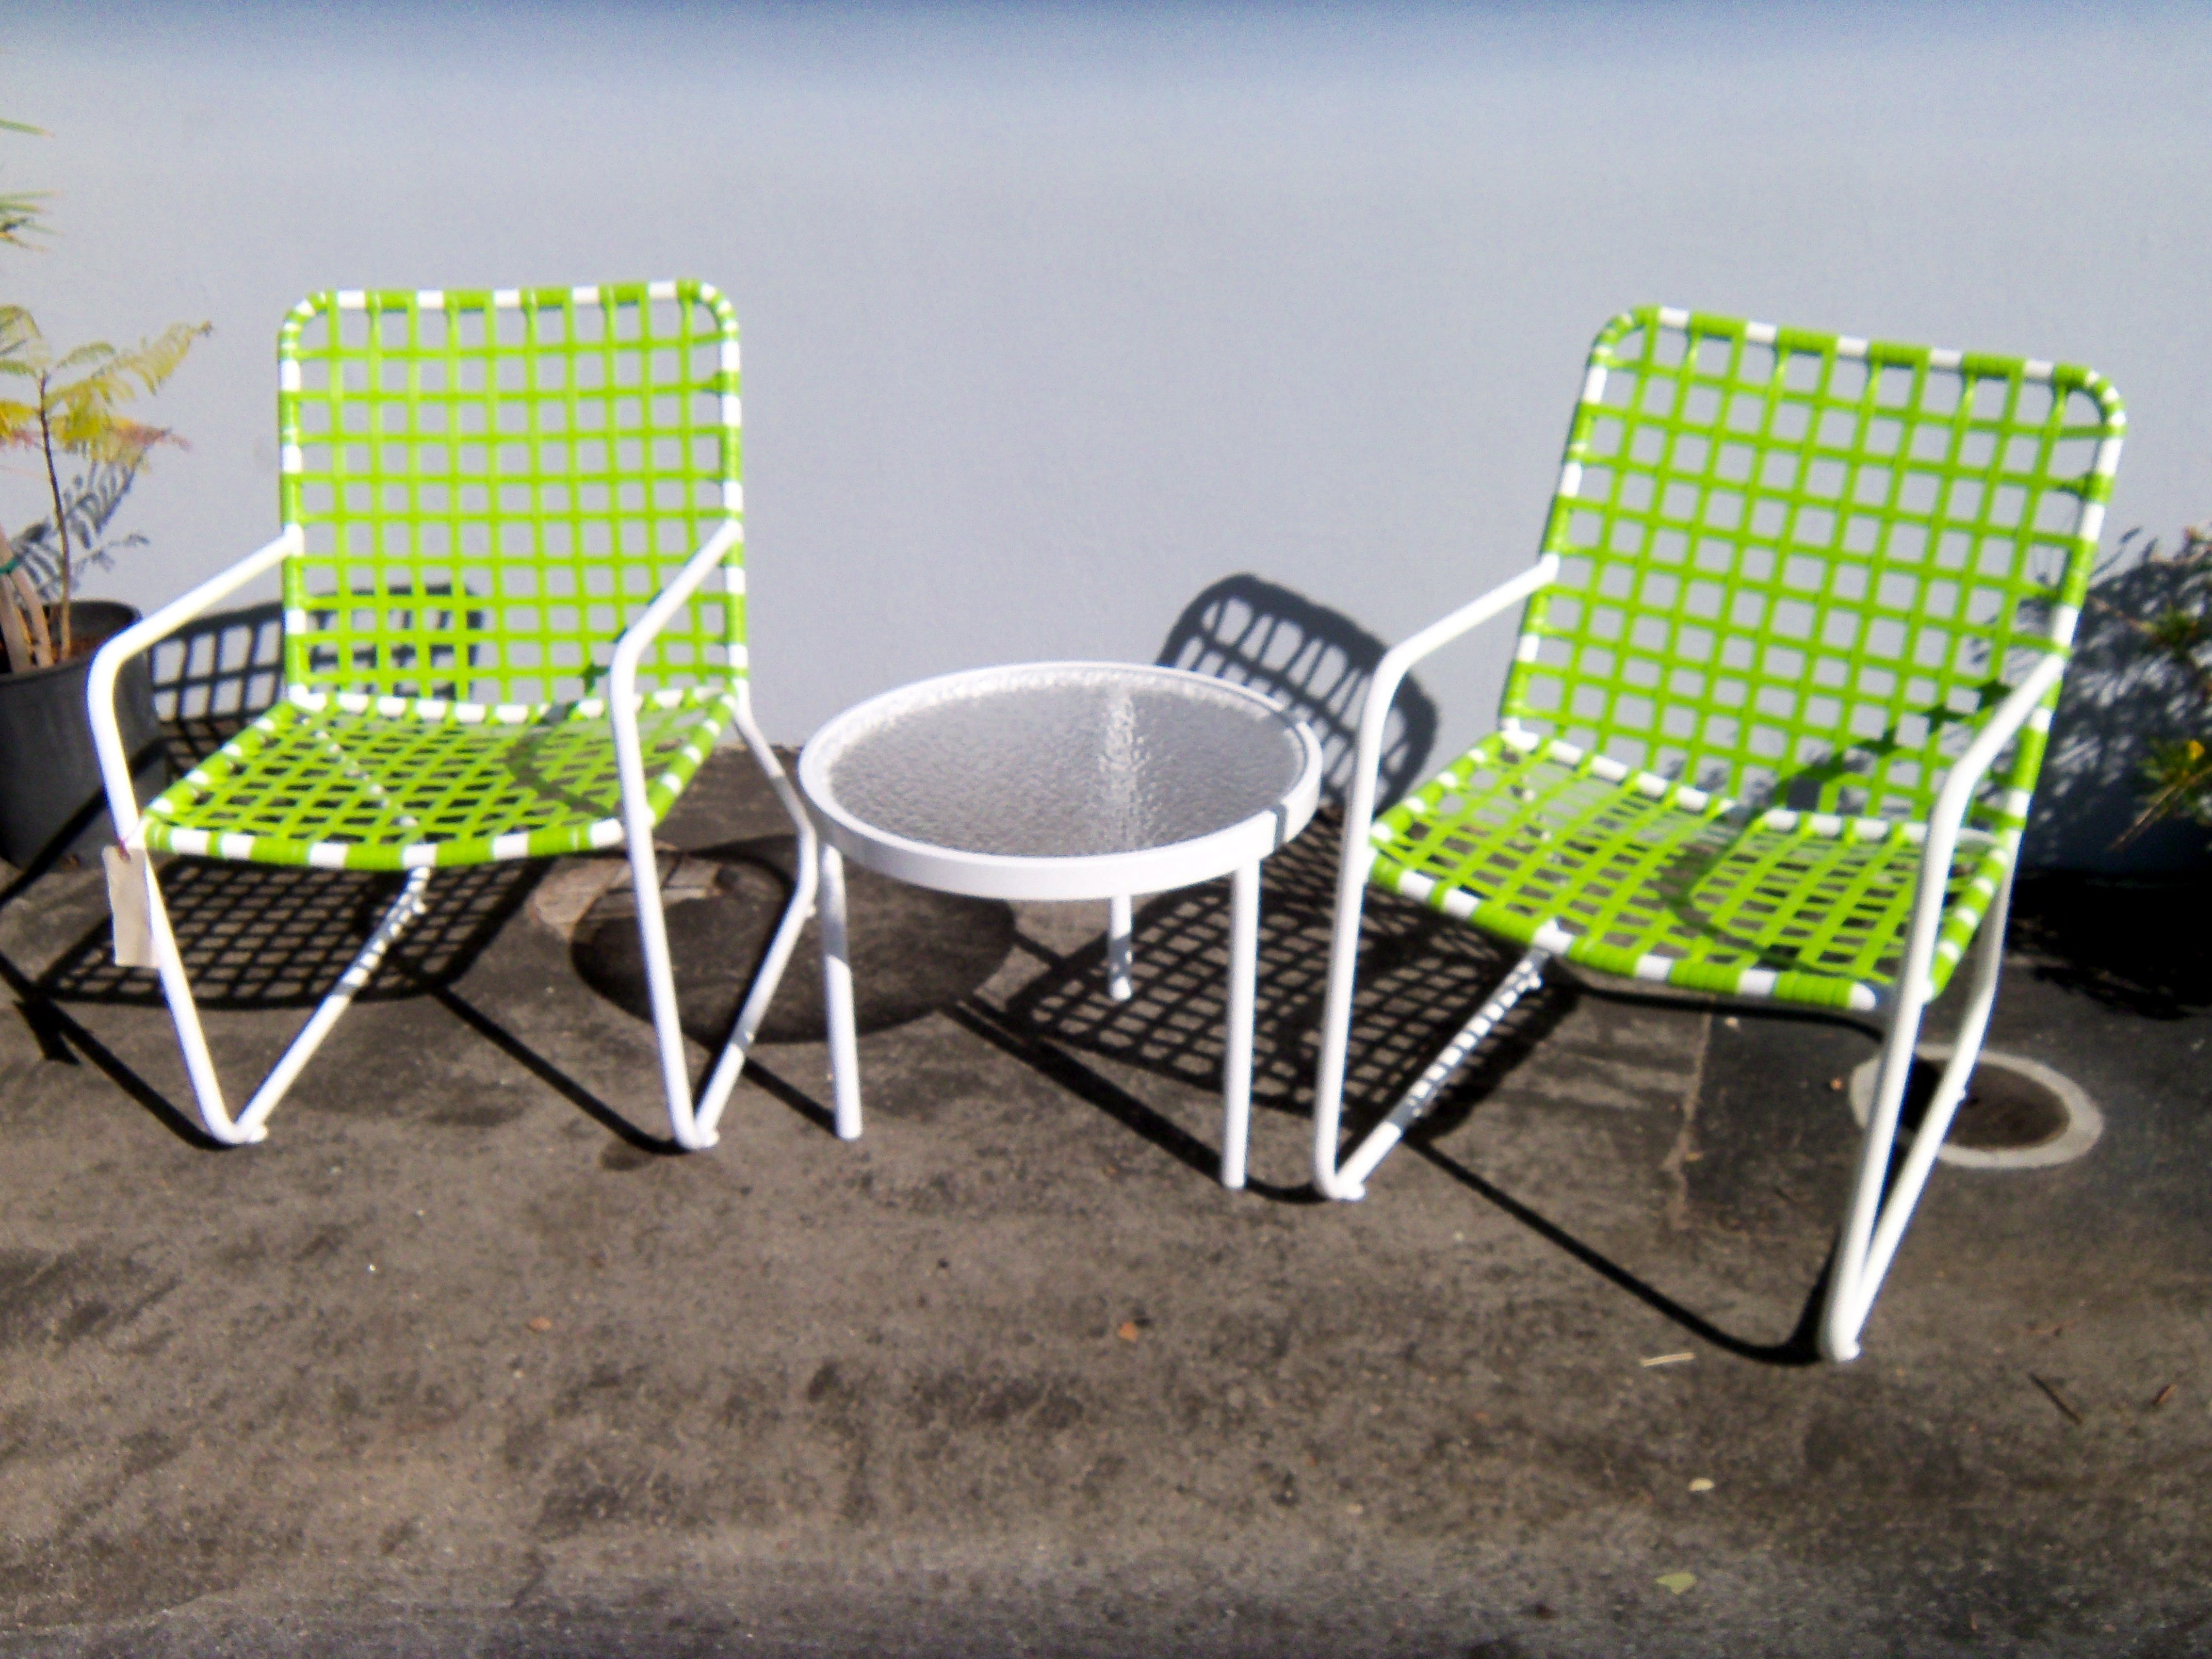 Lido Lace Chair In Lime Green On White Frames Vintage Patio Vintage Patio Furniture Patio Furniture